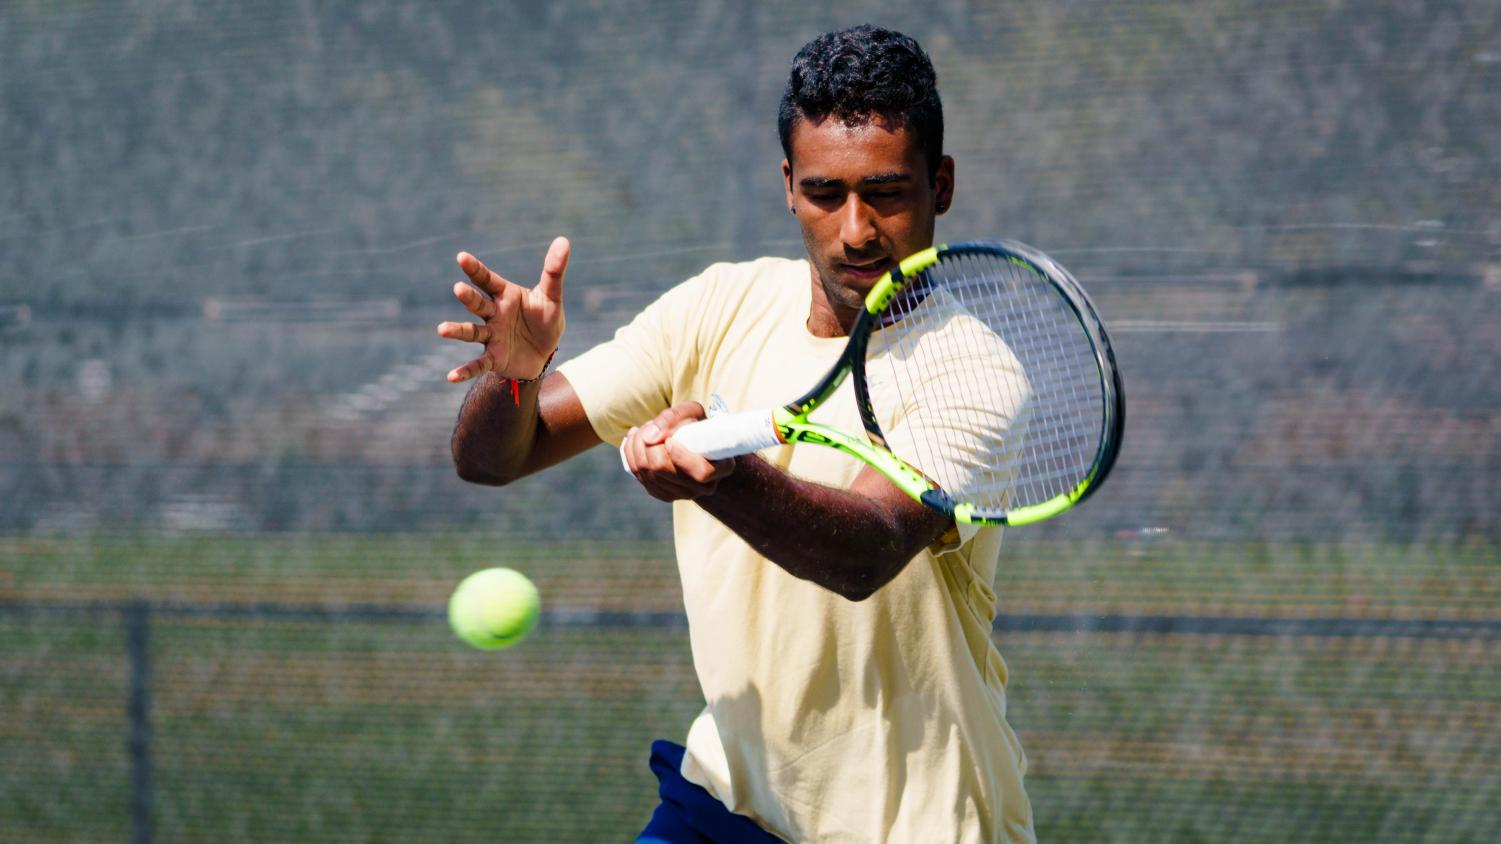 Entering as No. 3 seed in singles draw in the national semifinals, Anish Sriniketh concluded an impressive fall season.